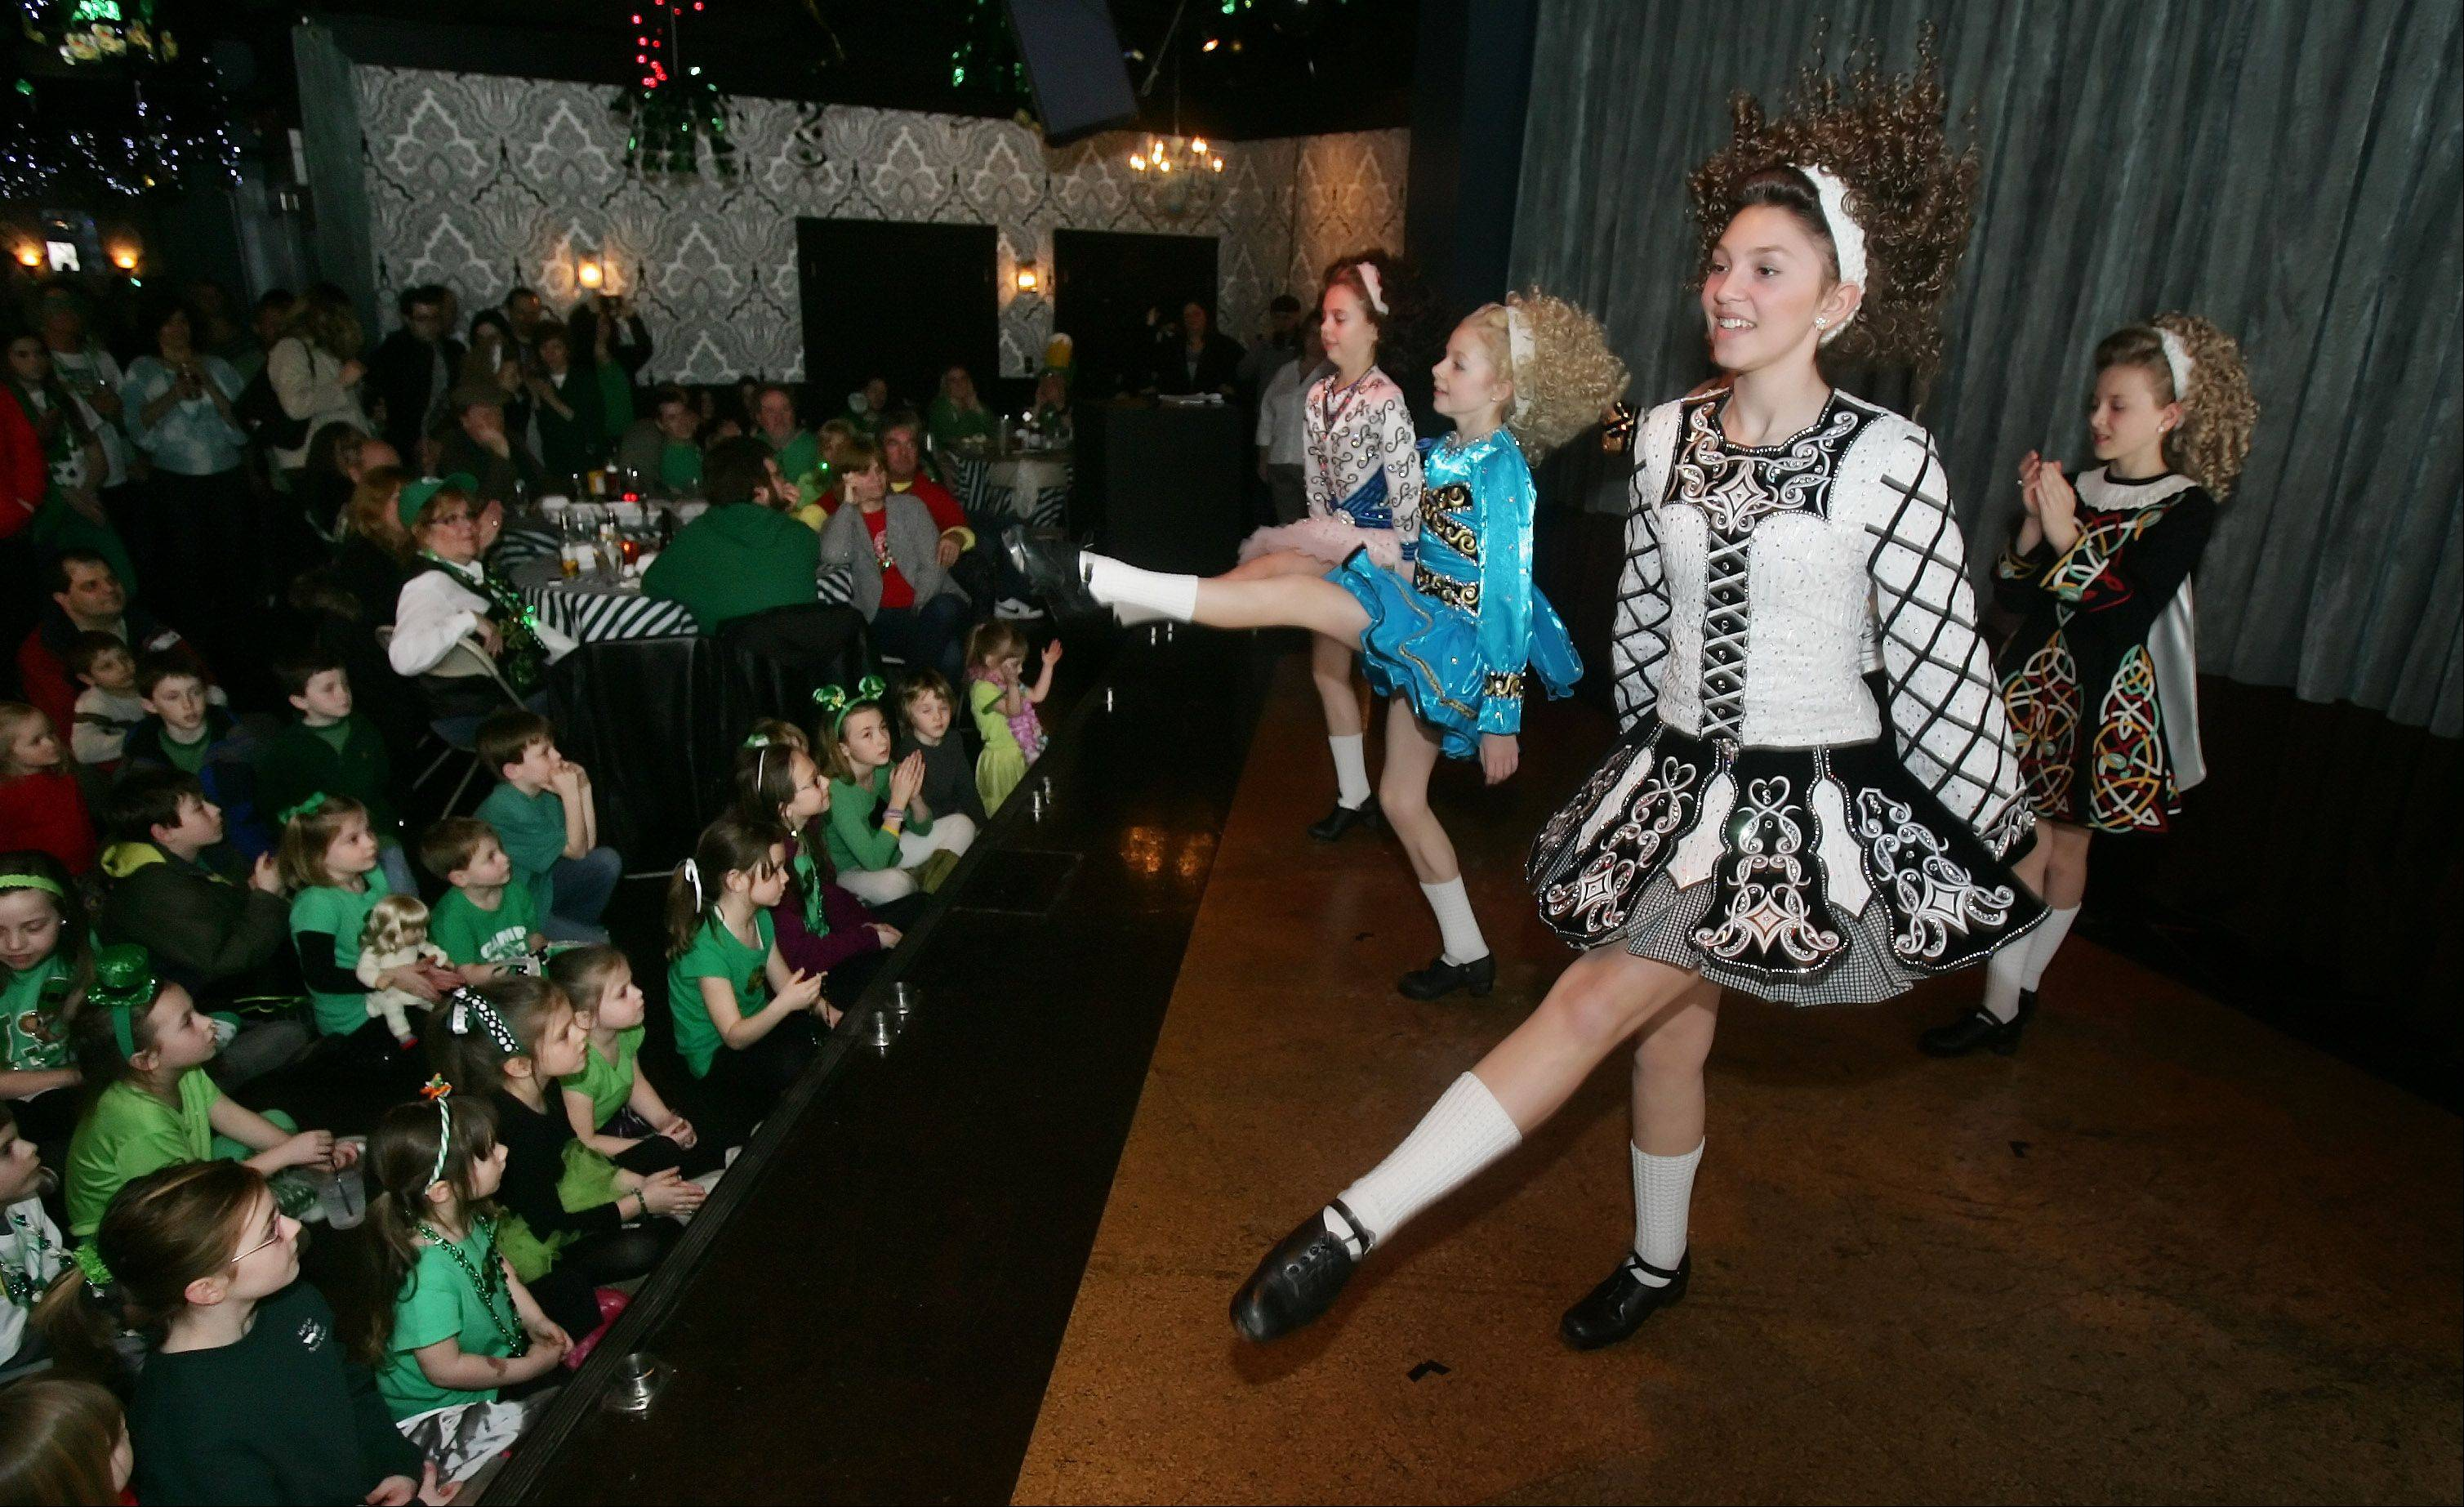 The Trinity Irish Dancers performed on St. Patrick's Day before a packed house Sunday at Mickey Finn's Brewery in Libertyville. The group has been performing the traditional Irish dance in the Chicago area for over 30 years.